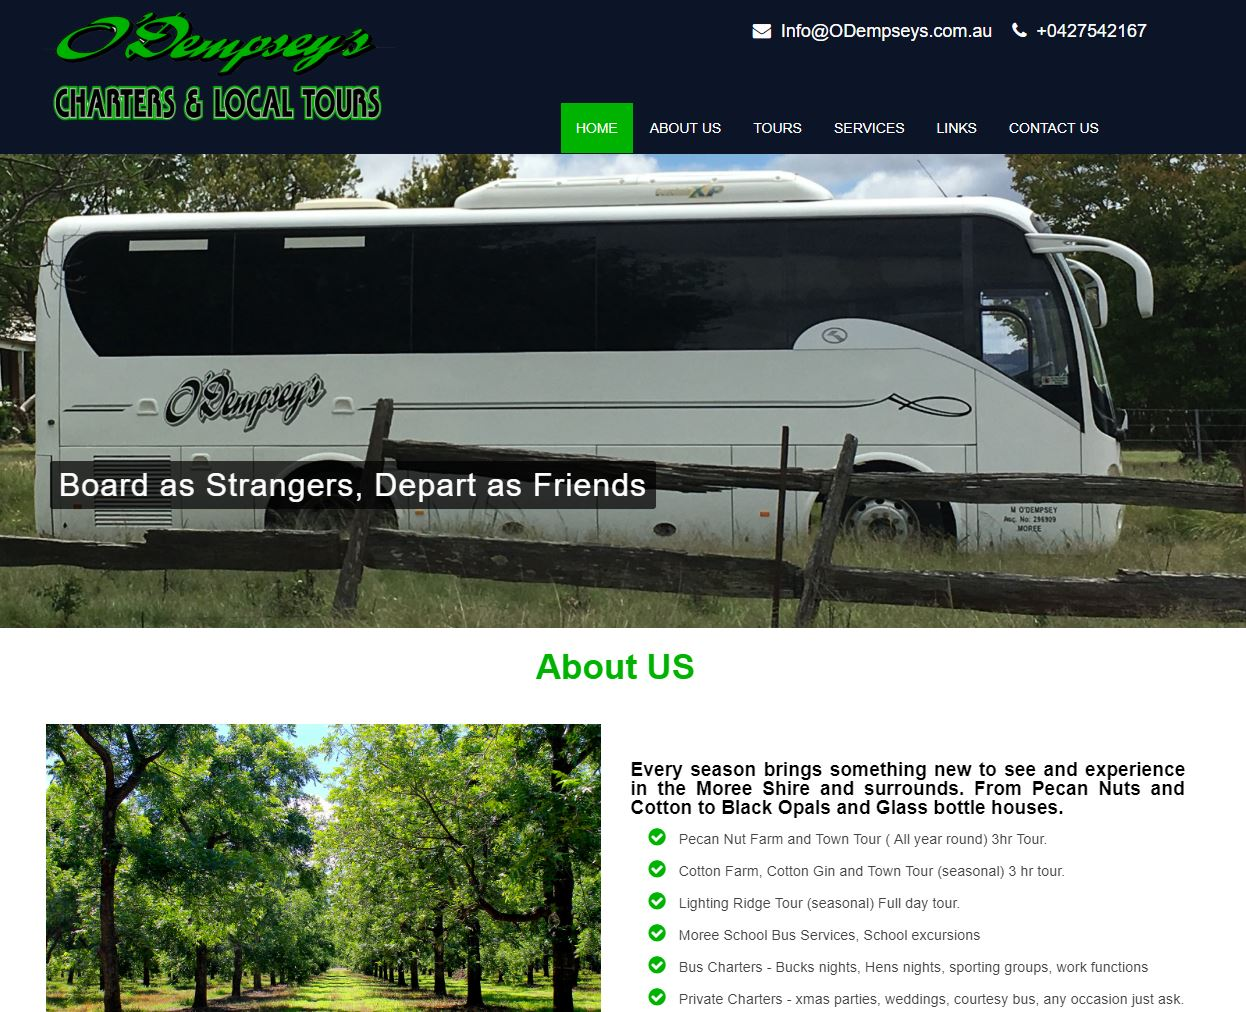 Odempsey's Bus Service